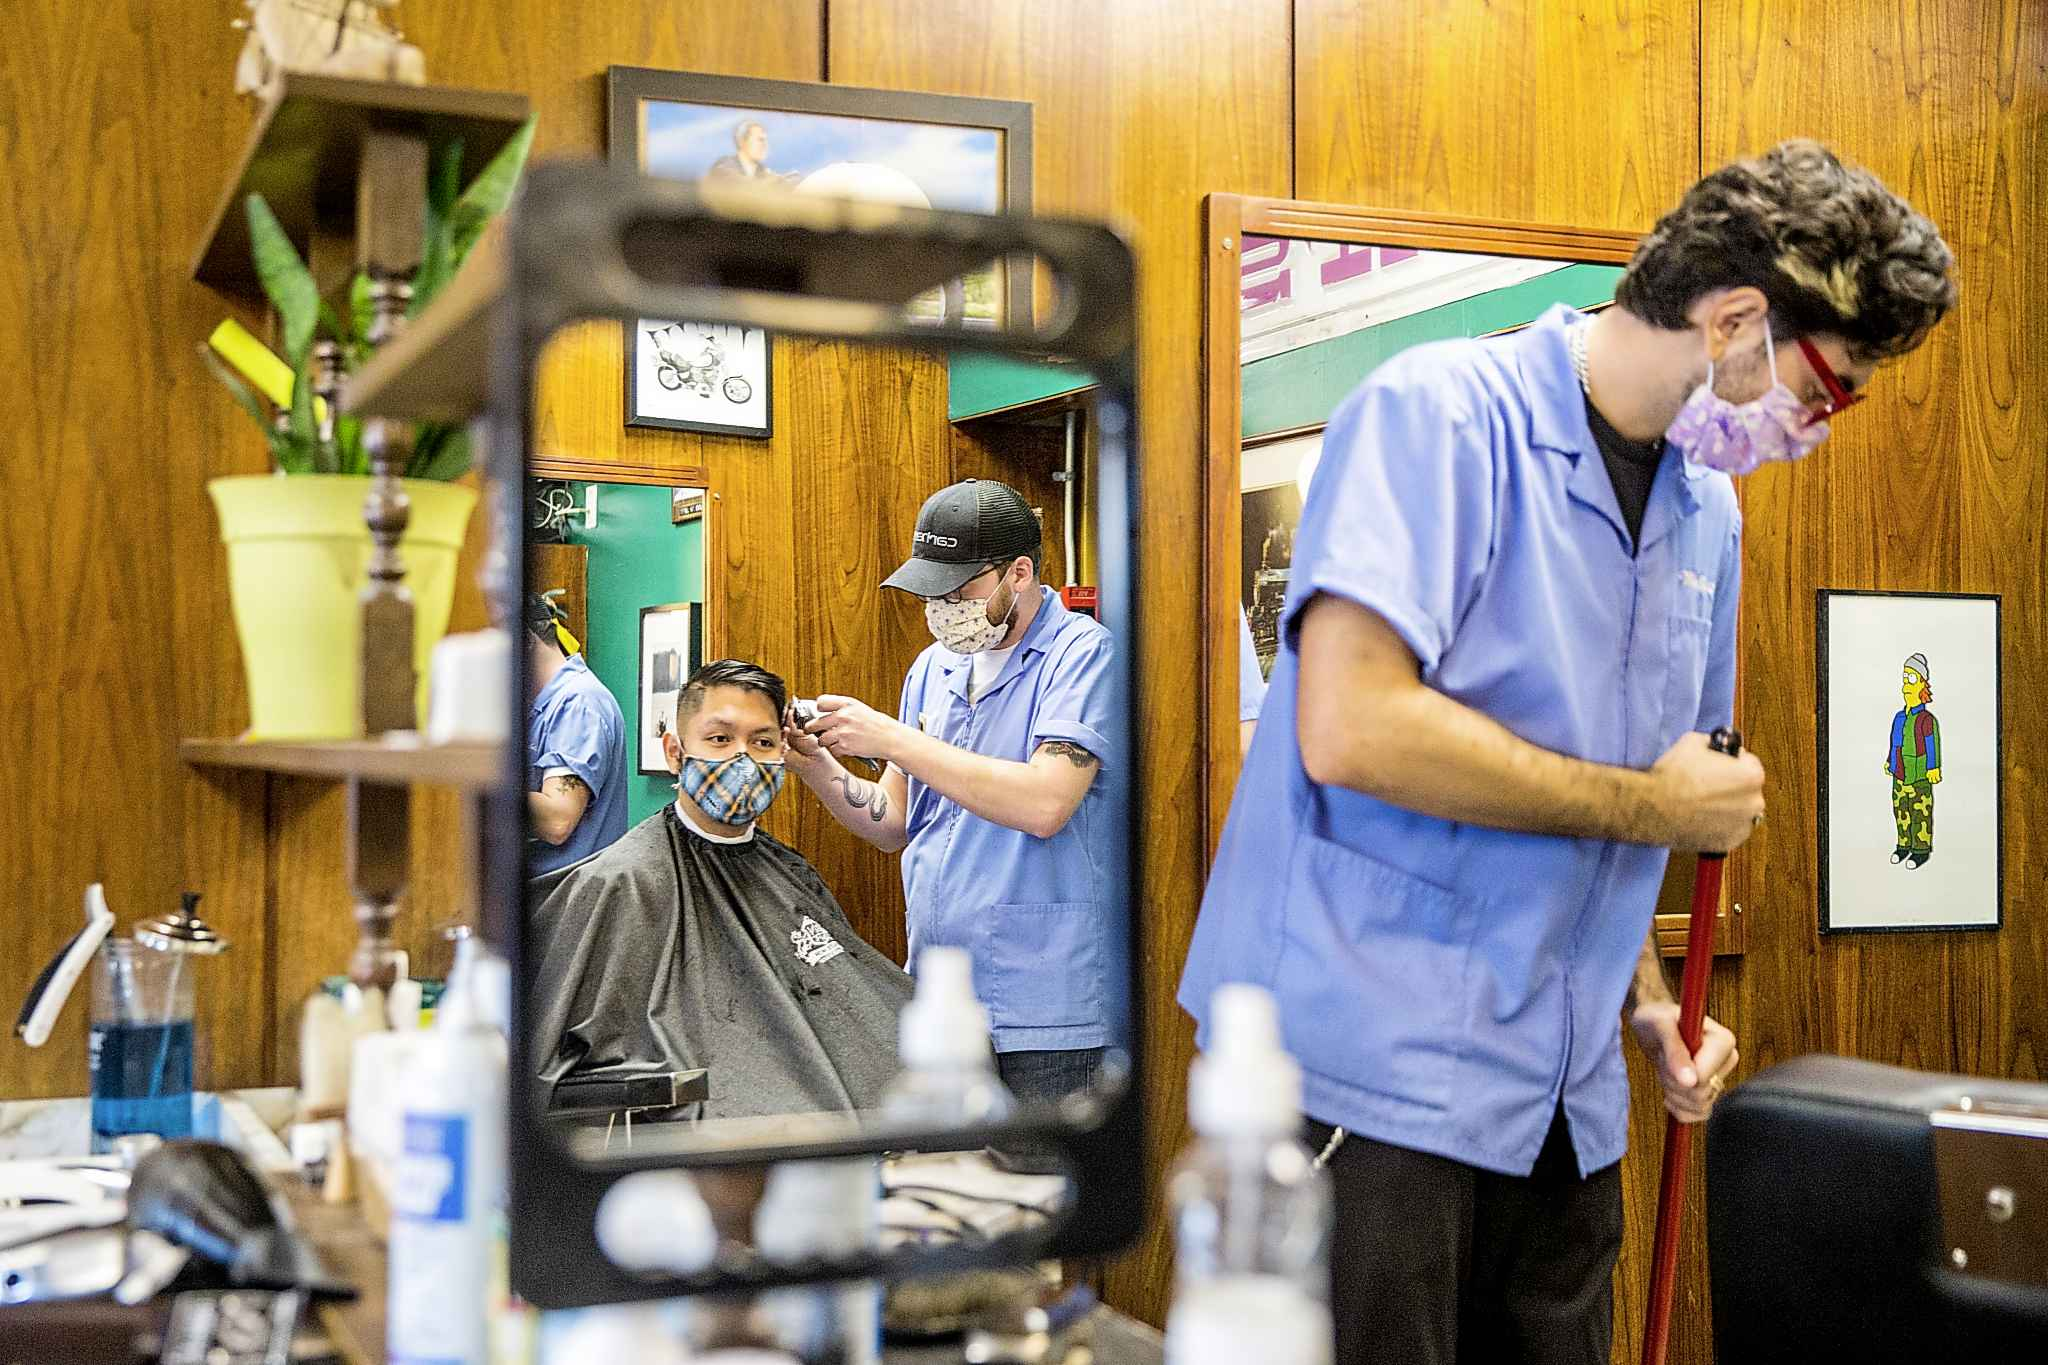 Ari Jakobson cuts Viet Bui's hair as Adam Woodbury sweeps up at Waltz On In barber shop, which will have to close on Thursday under new pandemic restrictions. (Mikaela MacKenzie / Winnipeg Free Press)